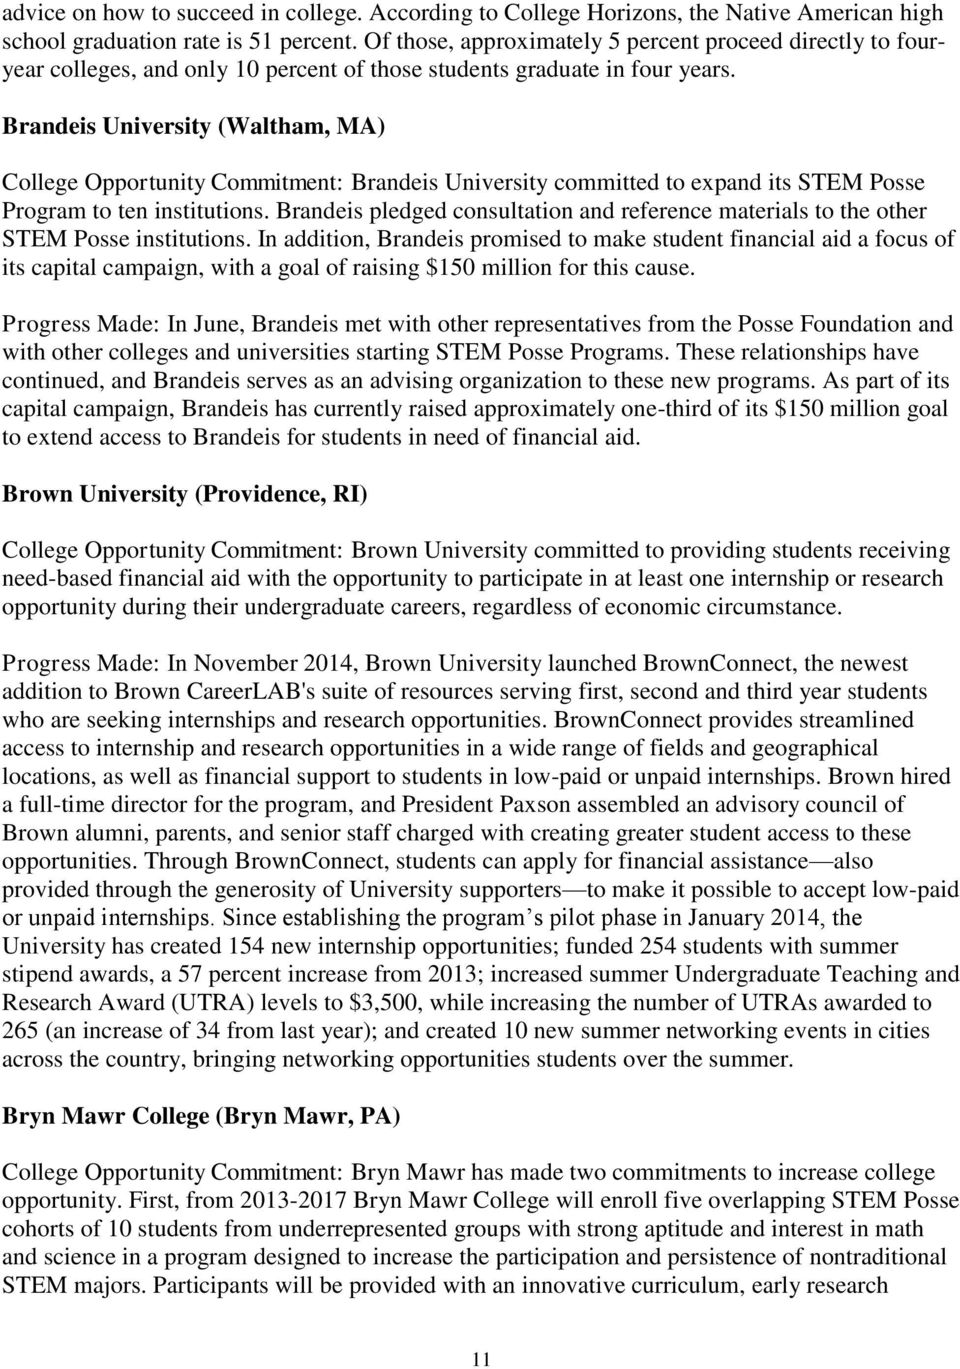 Brandeis University (Waltham, MA) College Opportunity Commitment: Brandeis University committed to expand its STEM Posse Program to ten institutions.